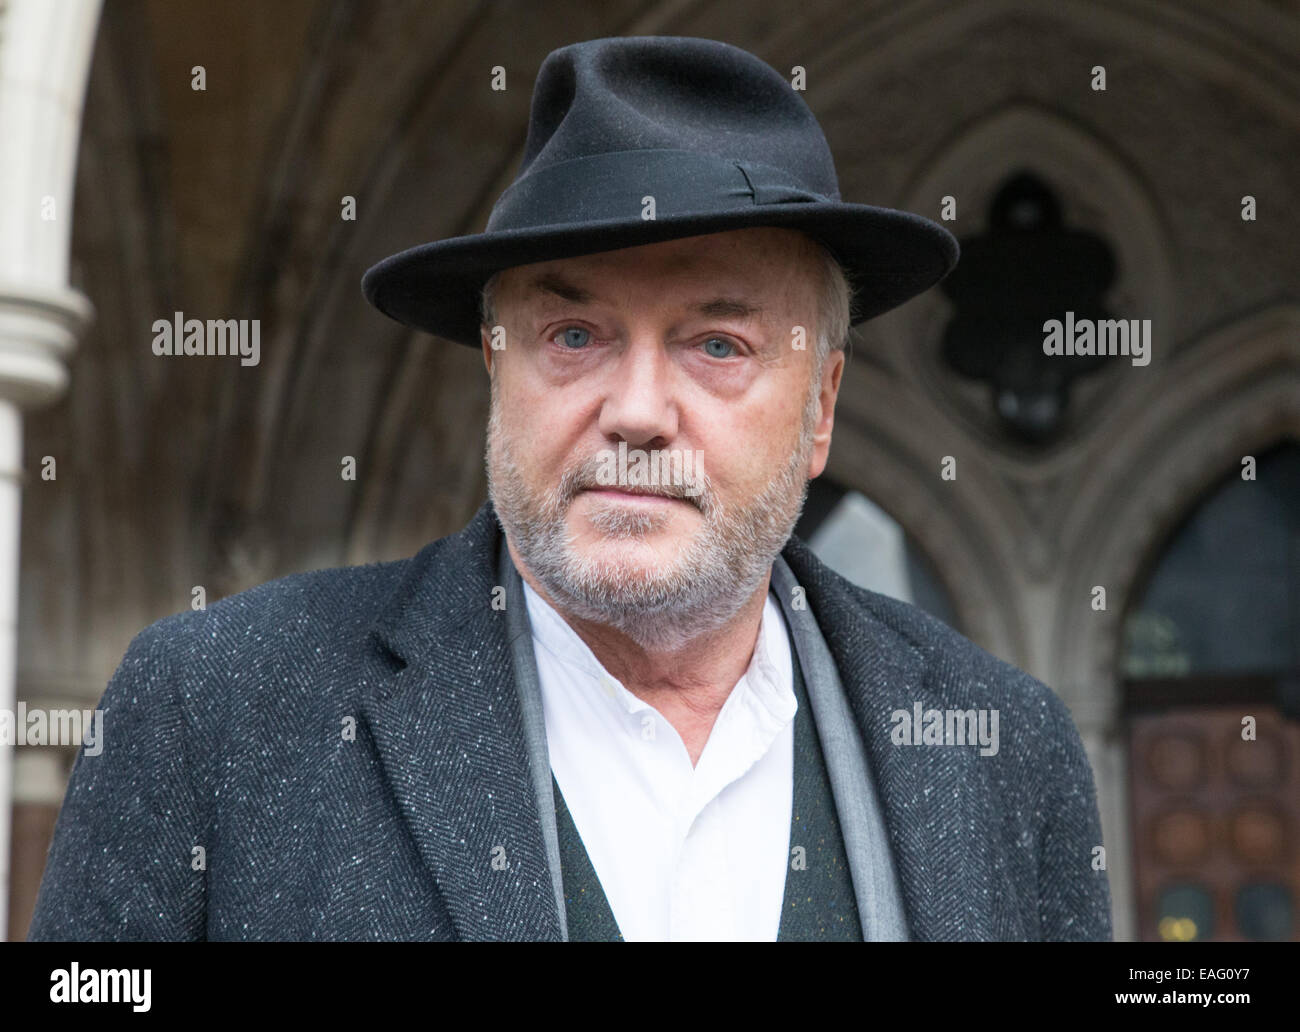 George Galloway arrives the the High Court to give evidence in the inquest into the death of Moazzam Begg - Stock Image